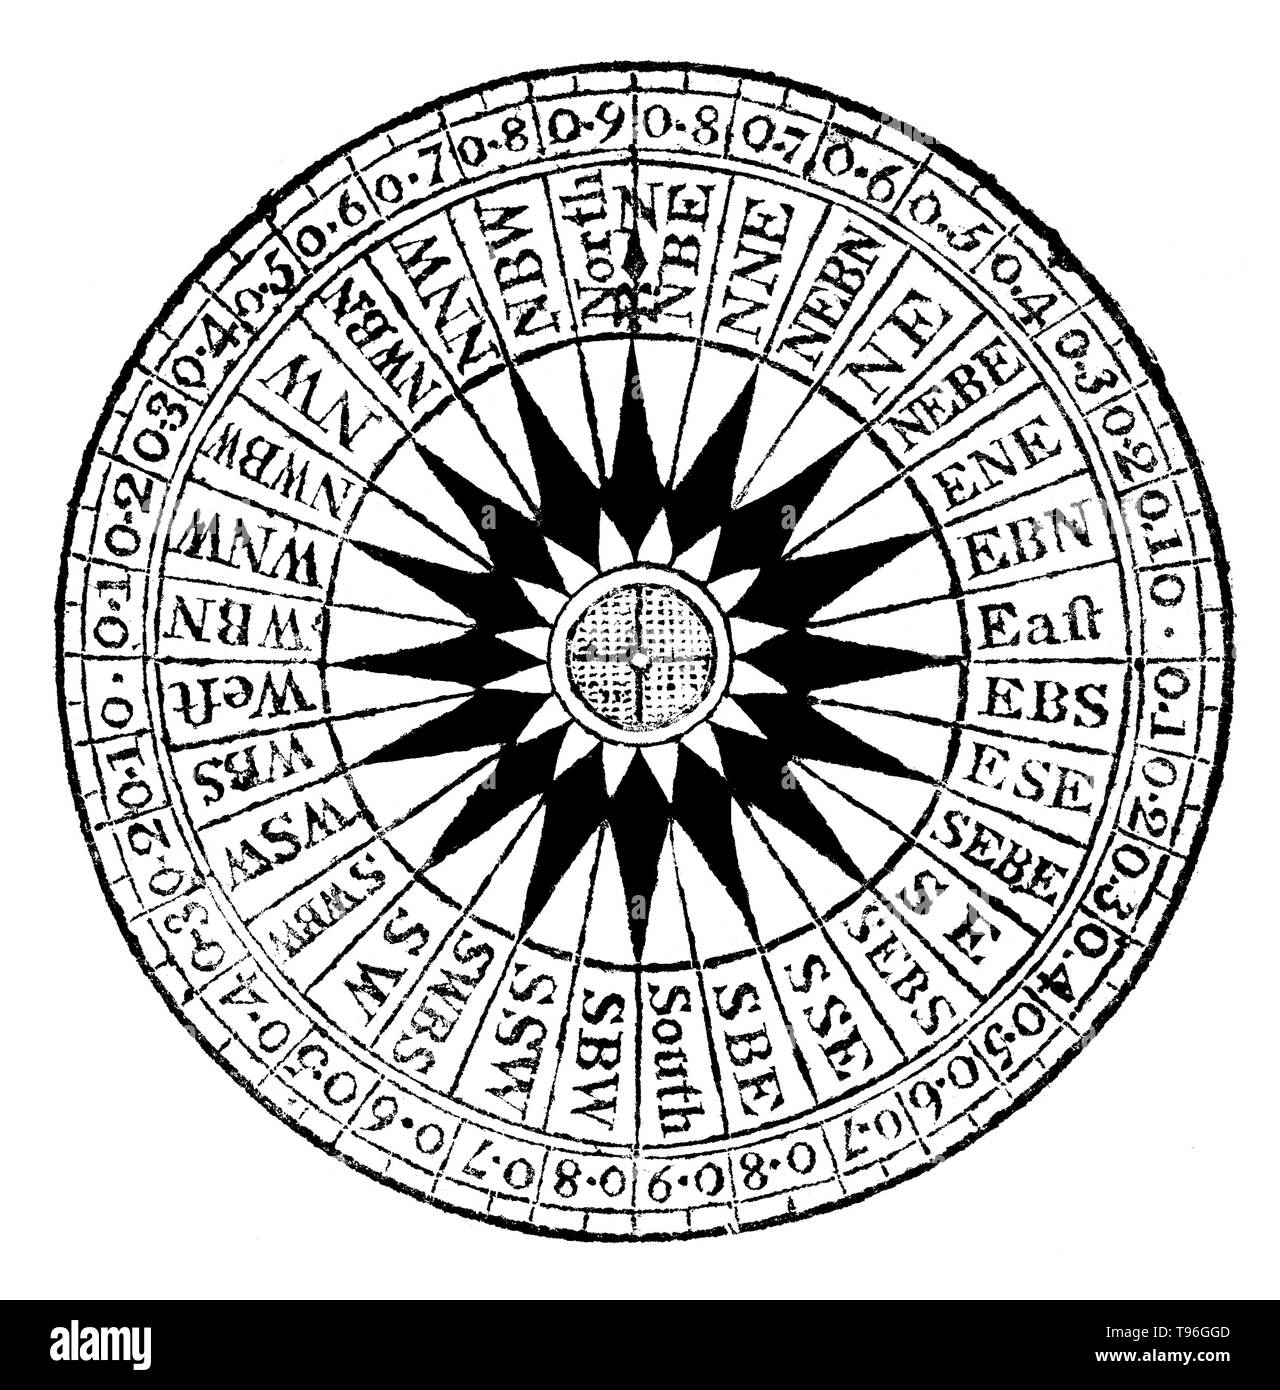 Compass Rose Black And White Stock Photos Amp Images